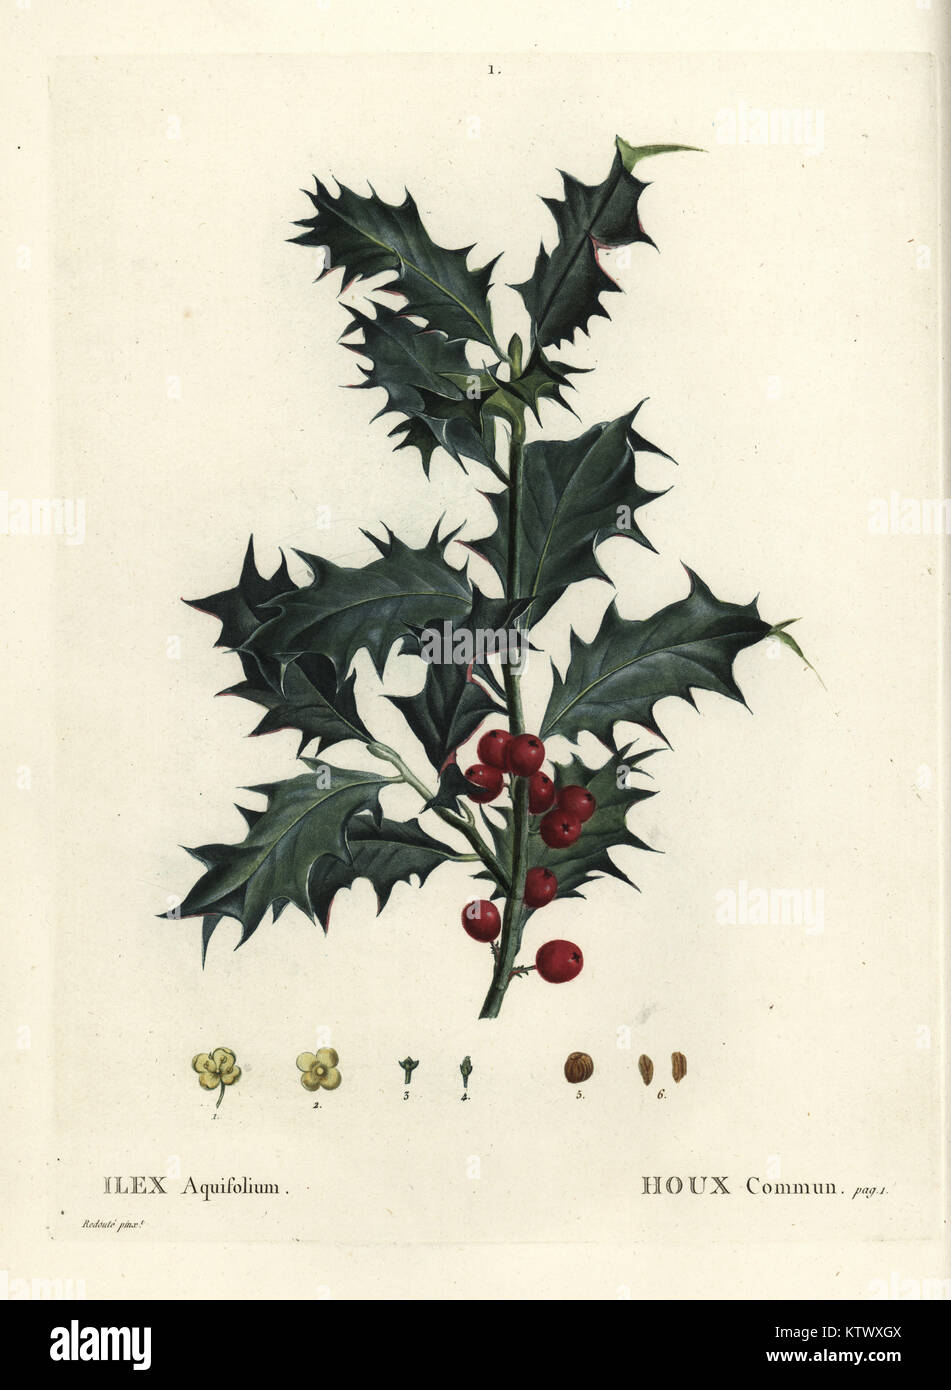 Common holly, Ilex aquifolium. Handcoloured stipple engraving after an illustration by Pierre-Joseph Redoute from Stock Photo